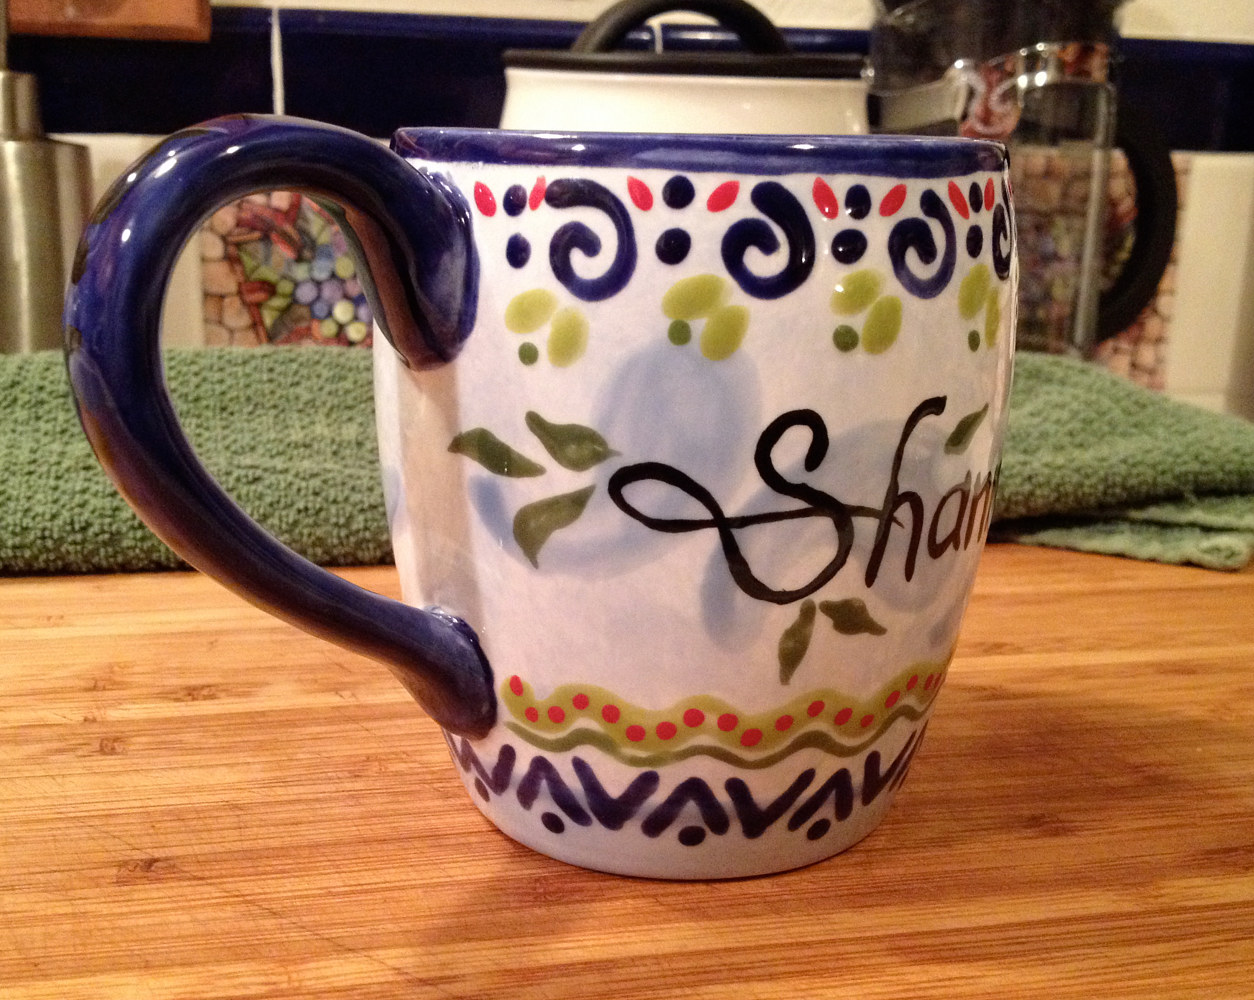 """Personalized Mug—Shannon"" (side) by Linnie (Victoria) Aikens Lindsay"